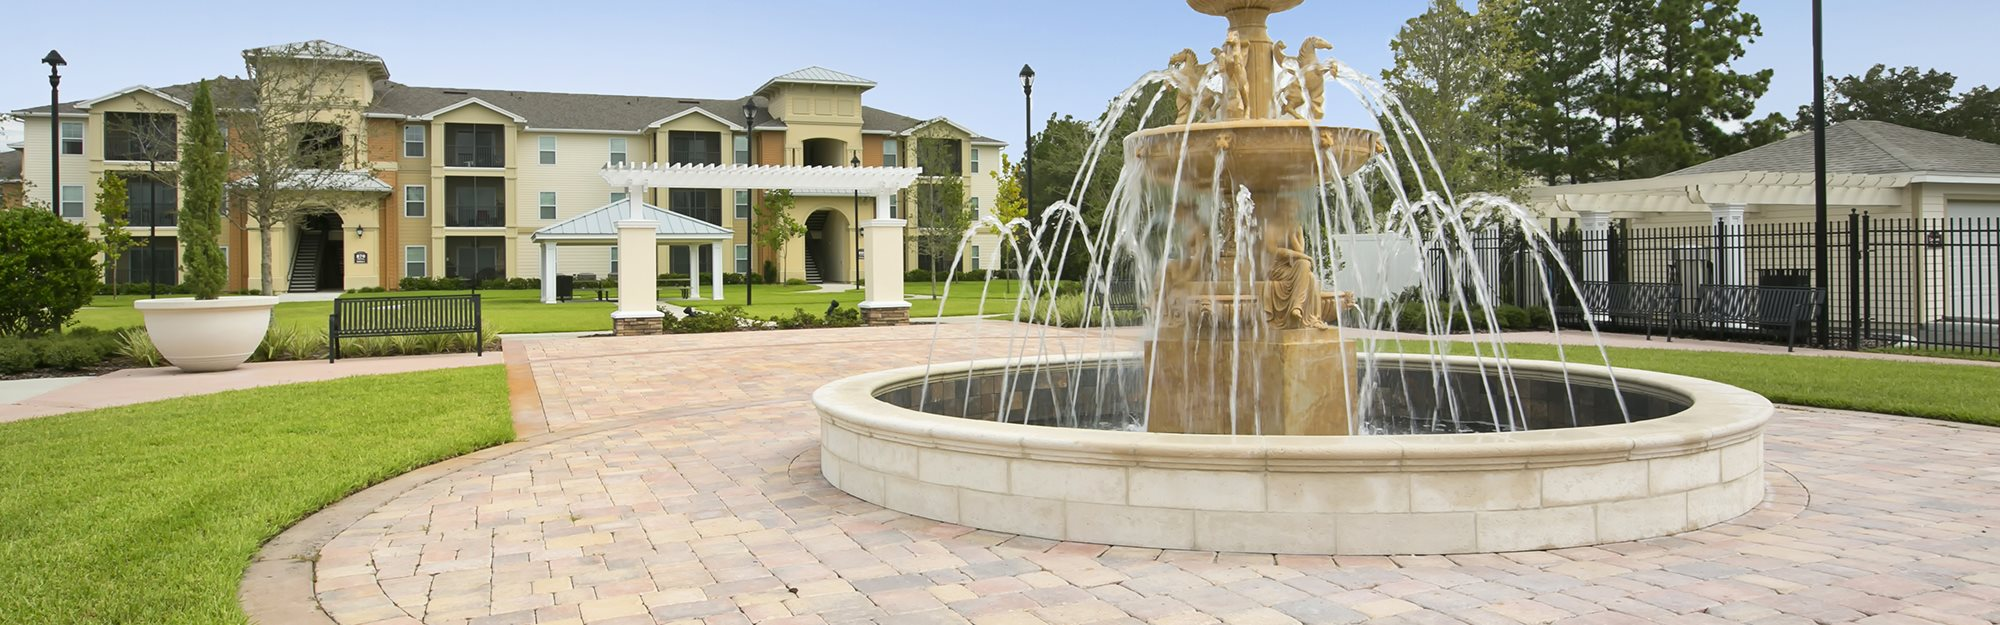 Fountains at San Remo Court Apartments for rent in Kissimmee, FL. Make this community your new home or visit other Concord Rents communities at ConcordRents.com. Fountain